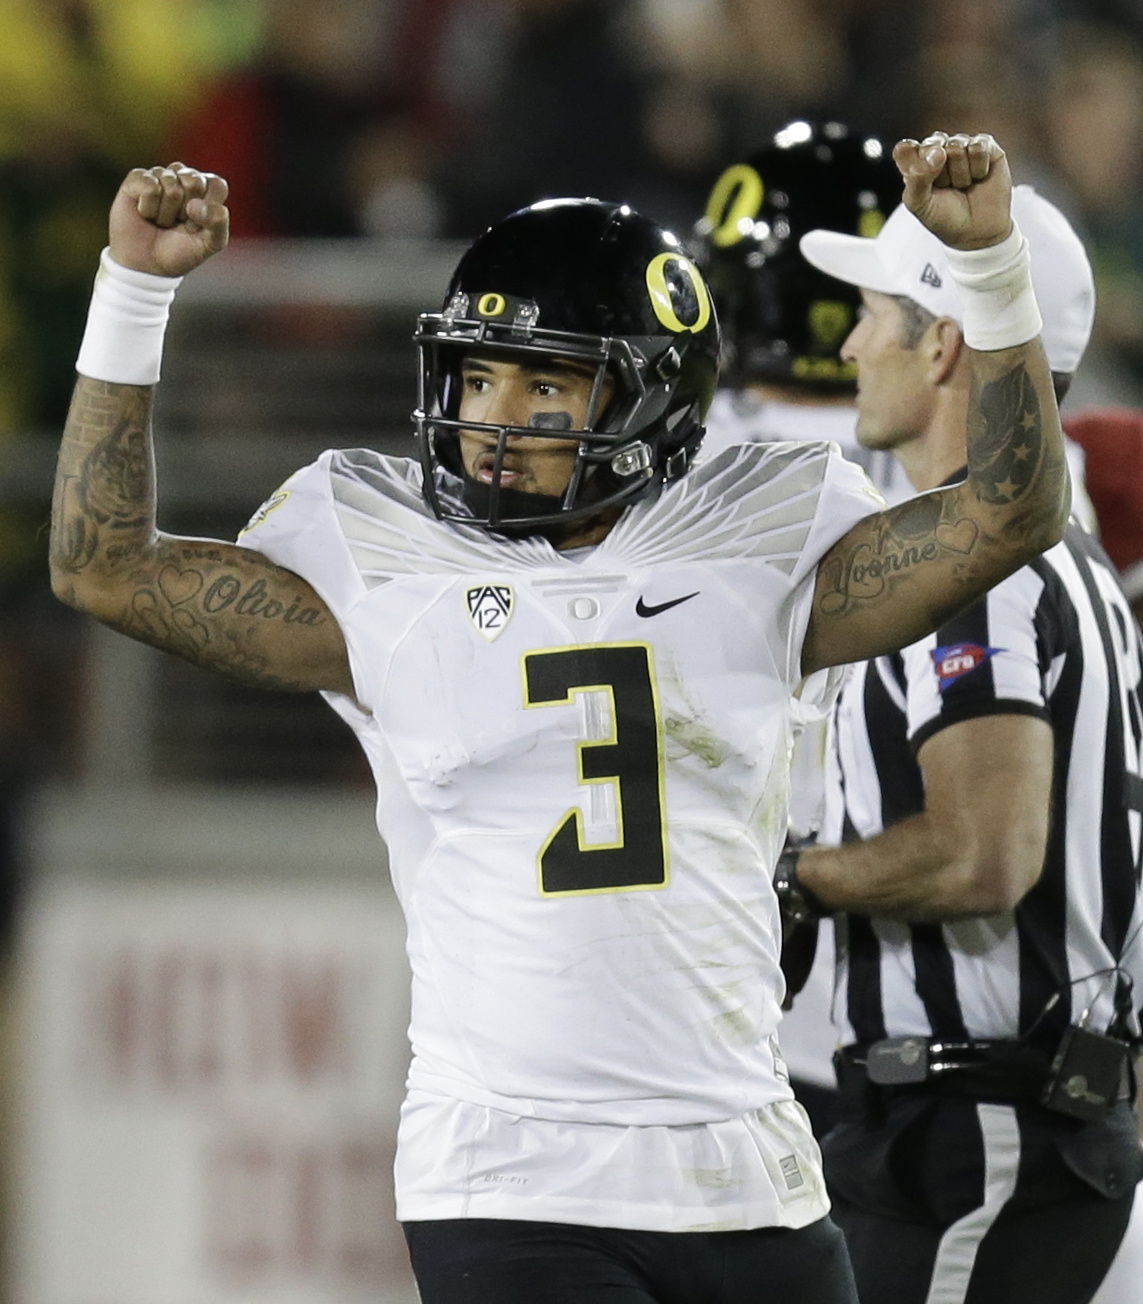 FILE - In this Nov. 14, 2015, file photo, Oregon quarterback Vernon Adams Jr. (3) celebrates at the end of an NCAA college football game against Stanford,  in Stanford, Calif. No. 22 Southern California (7-3) is at No. 23 Oregon (7-3) Saturday and both te